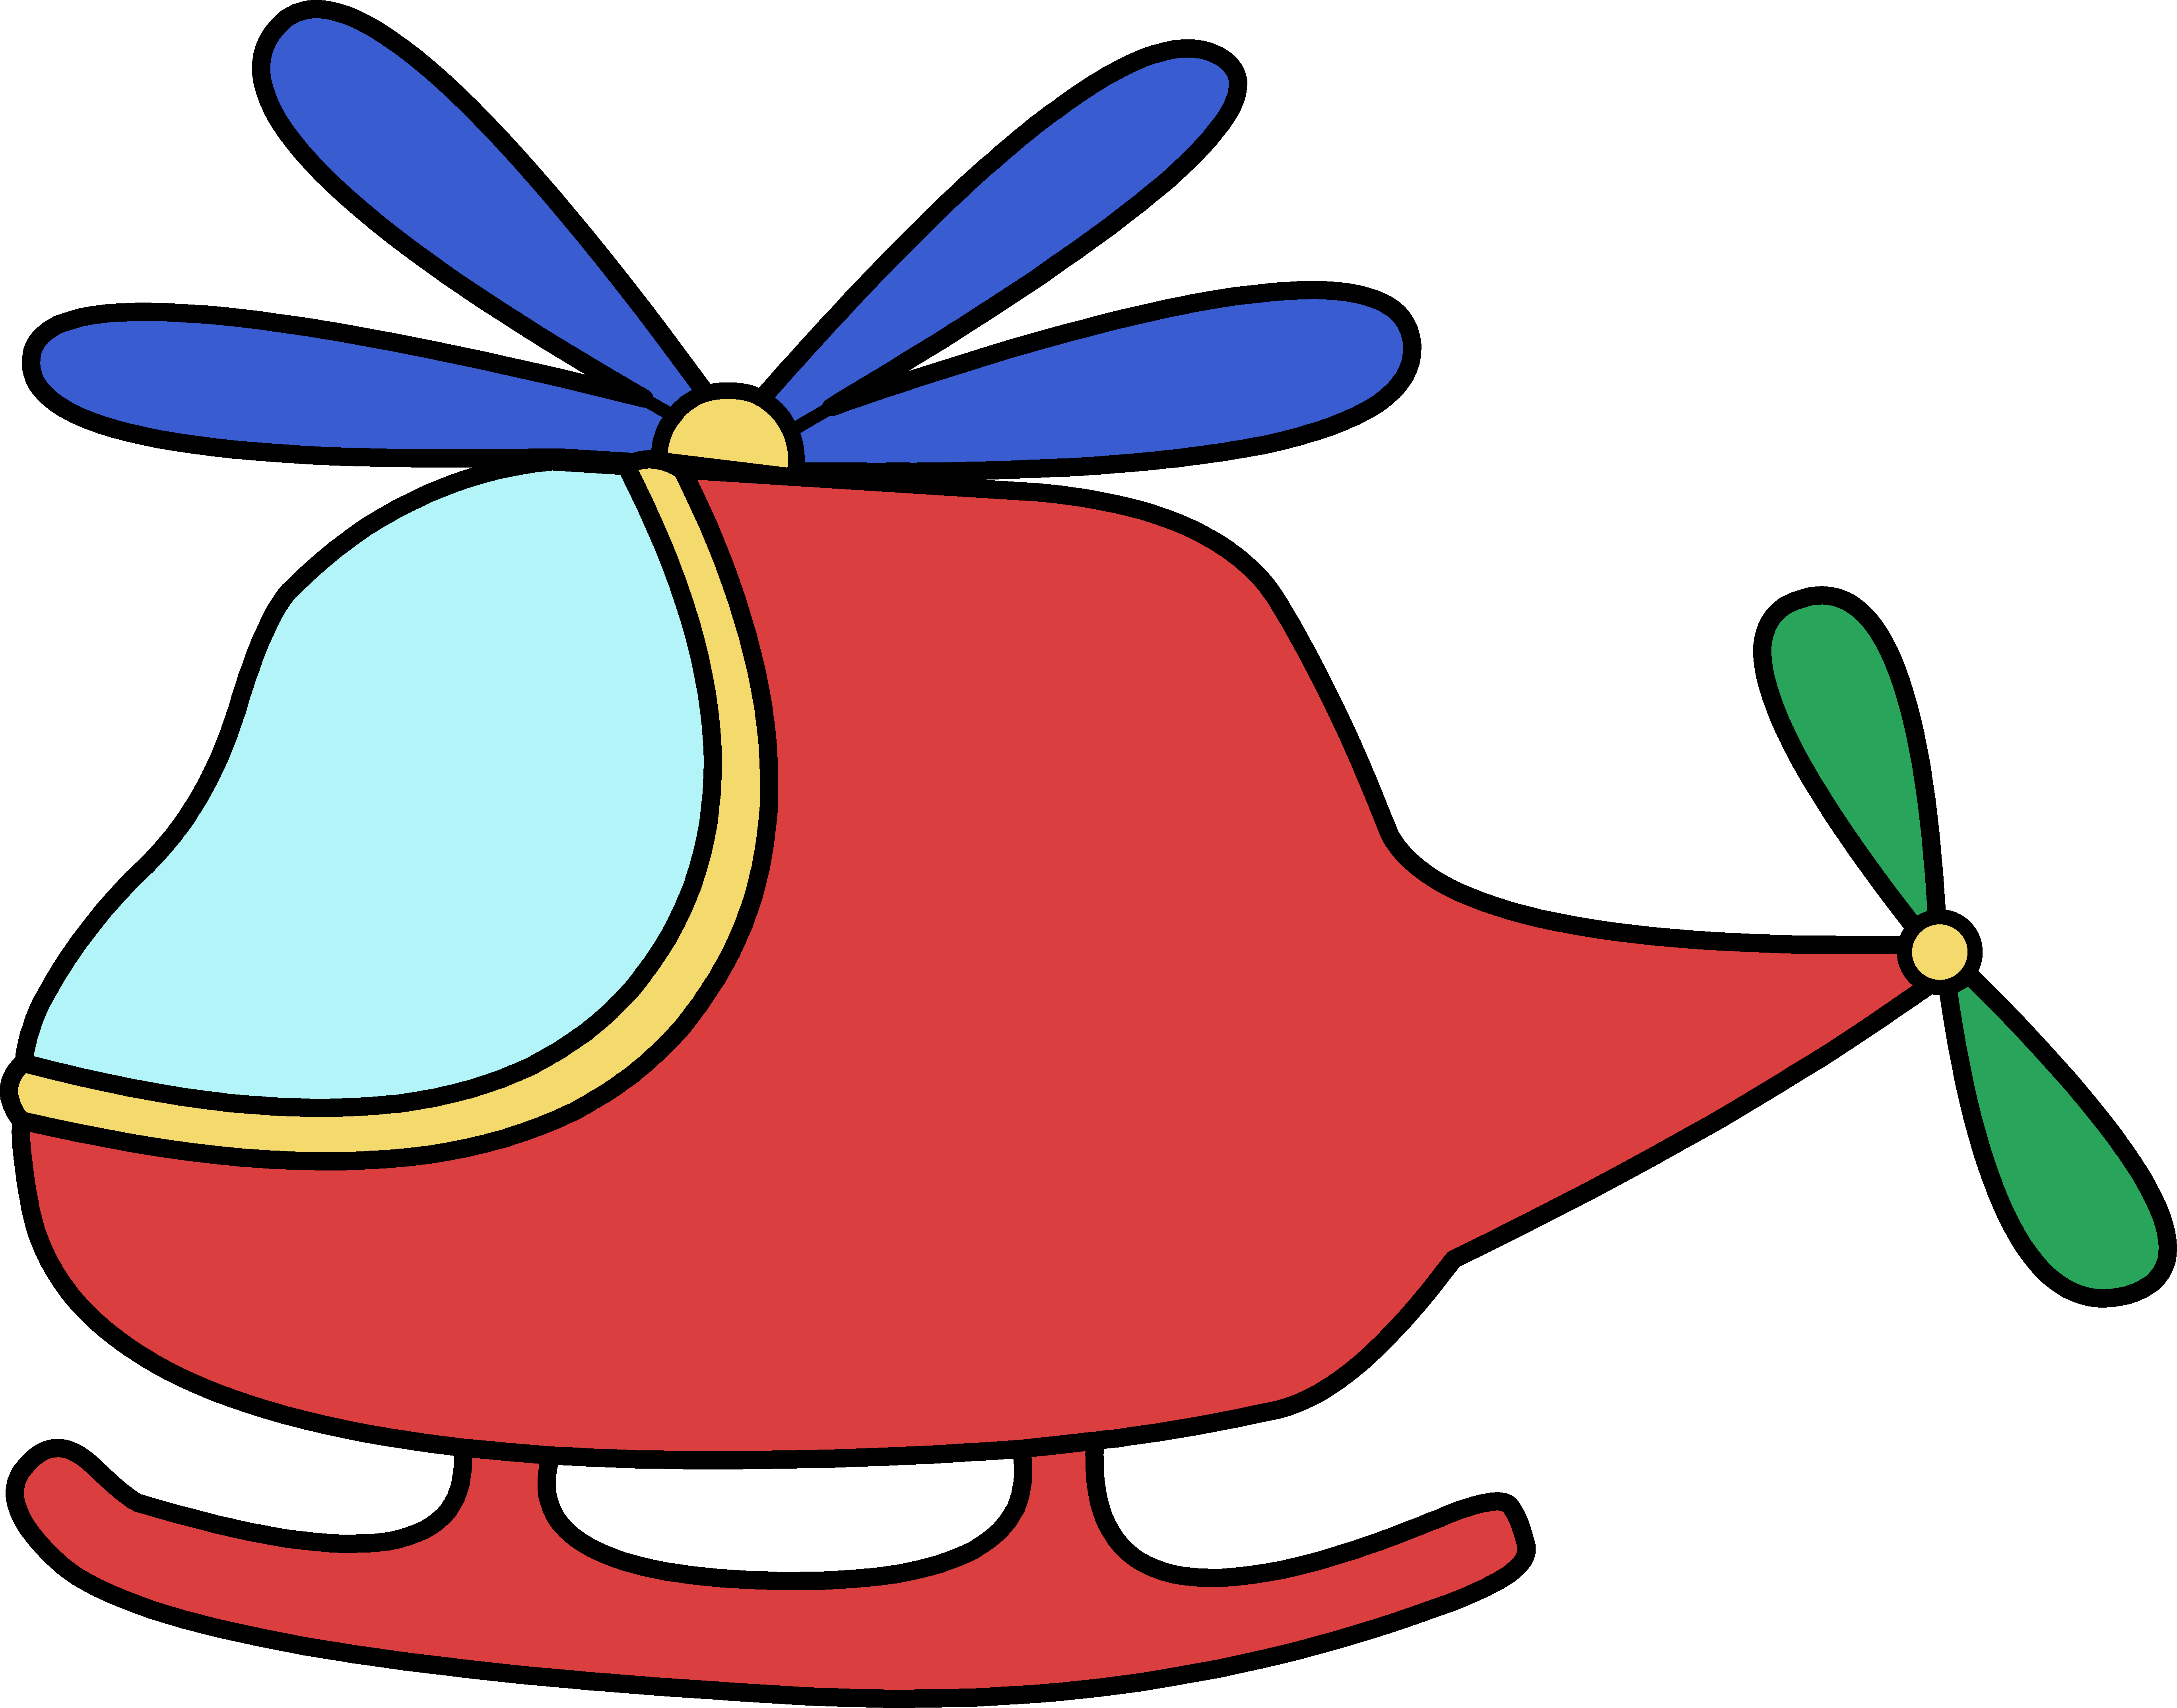 Cartoon helicopter png. Free graphics download clip